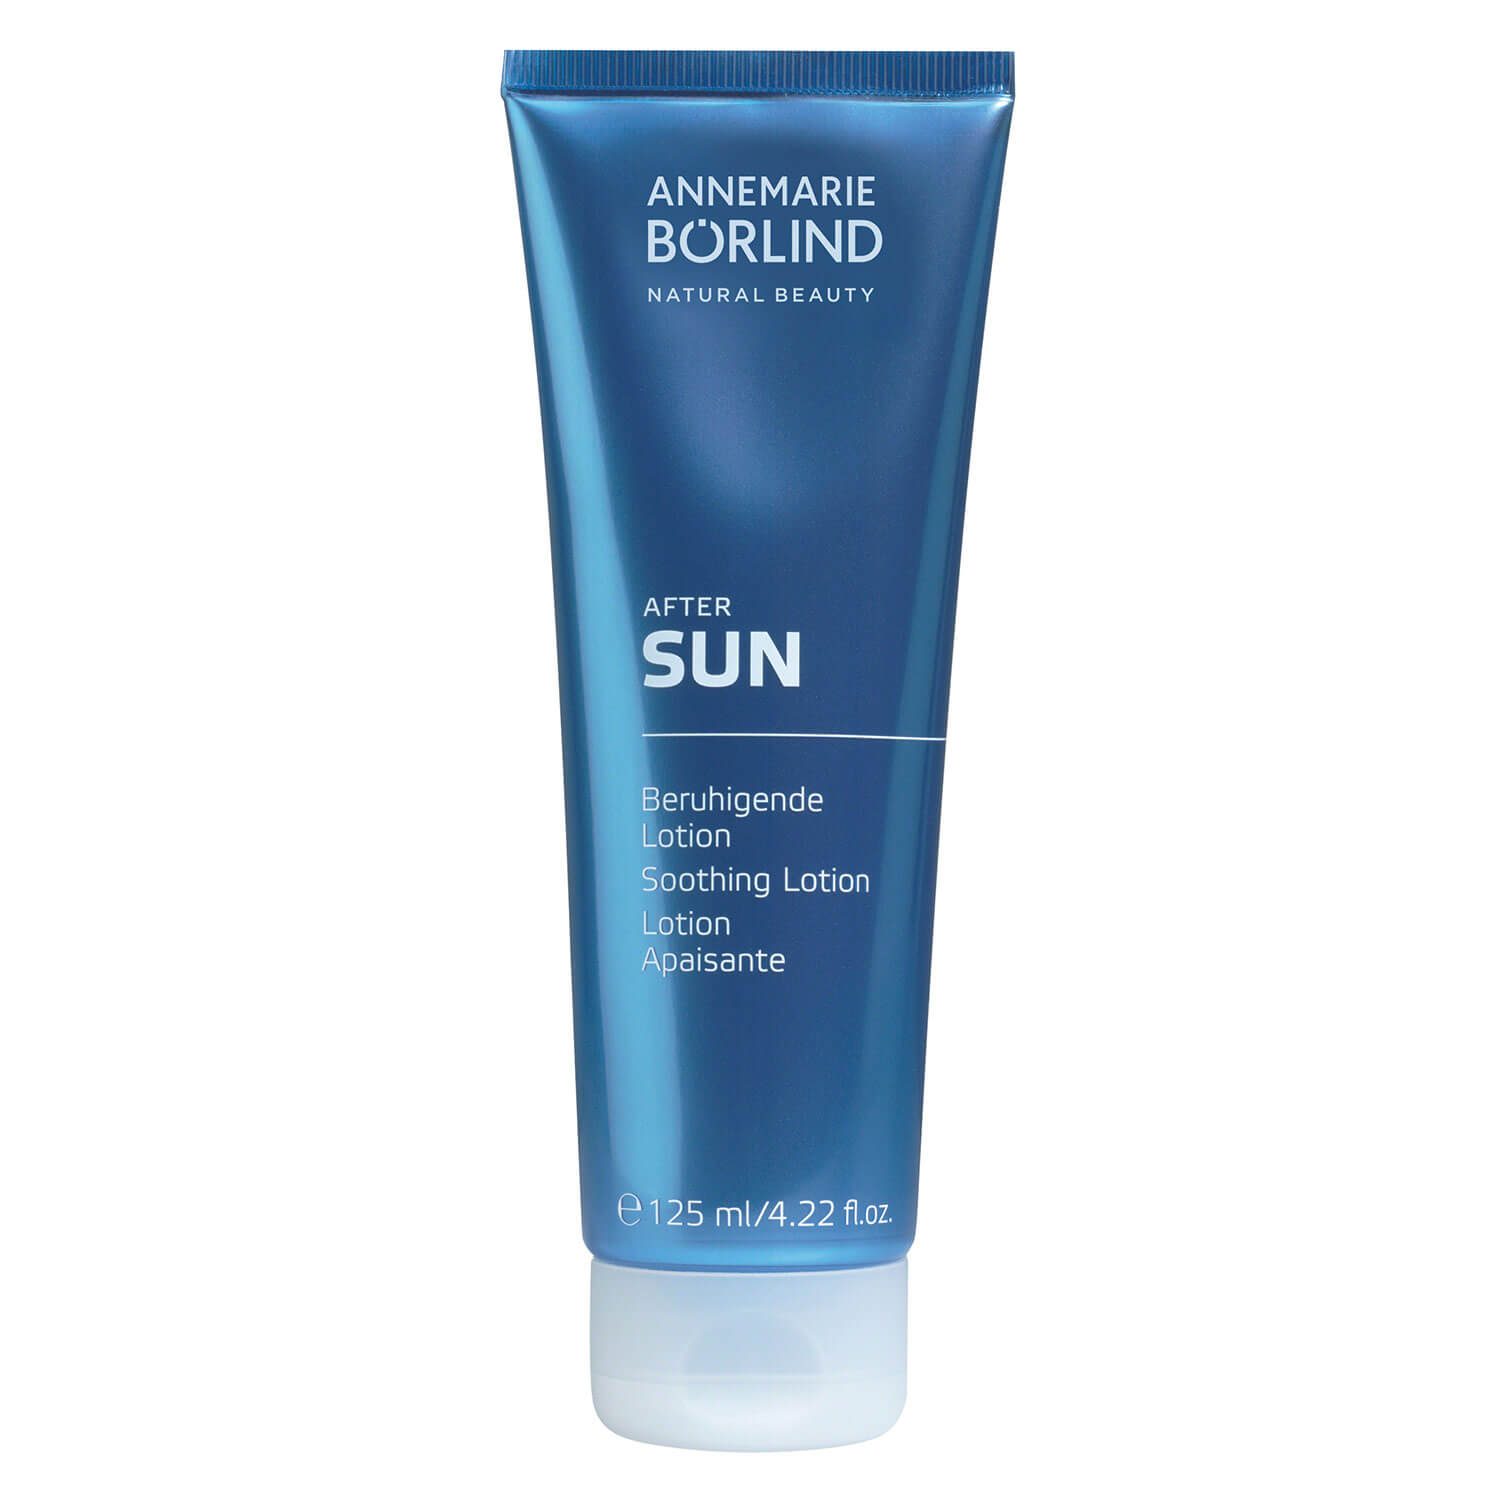 Annemarie Börlind Sun - After Sun Beruhigende Lotion